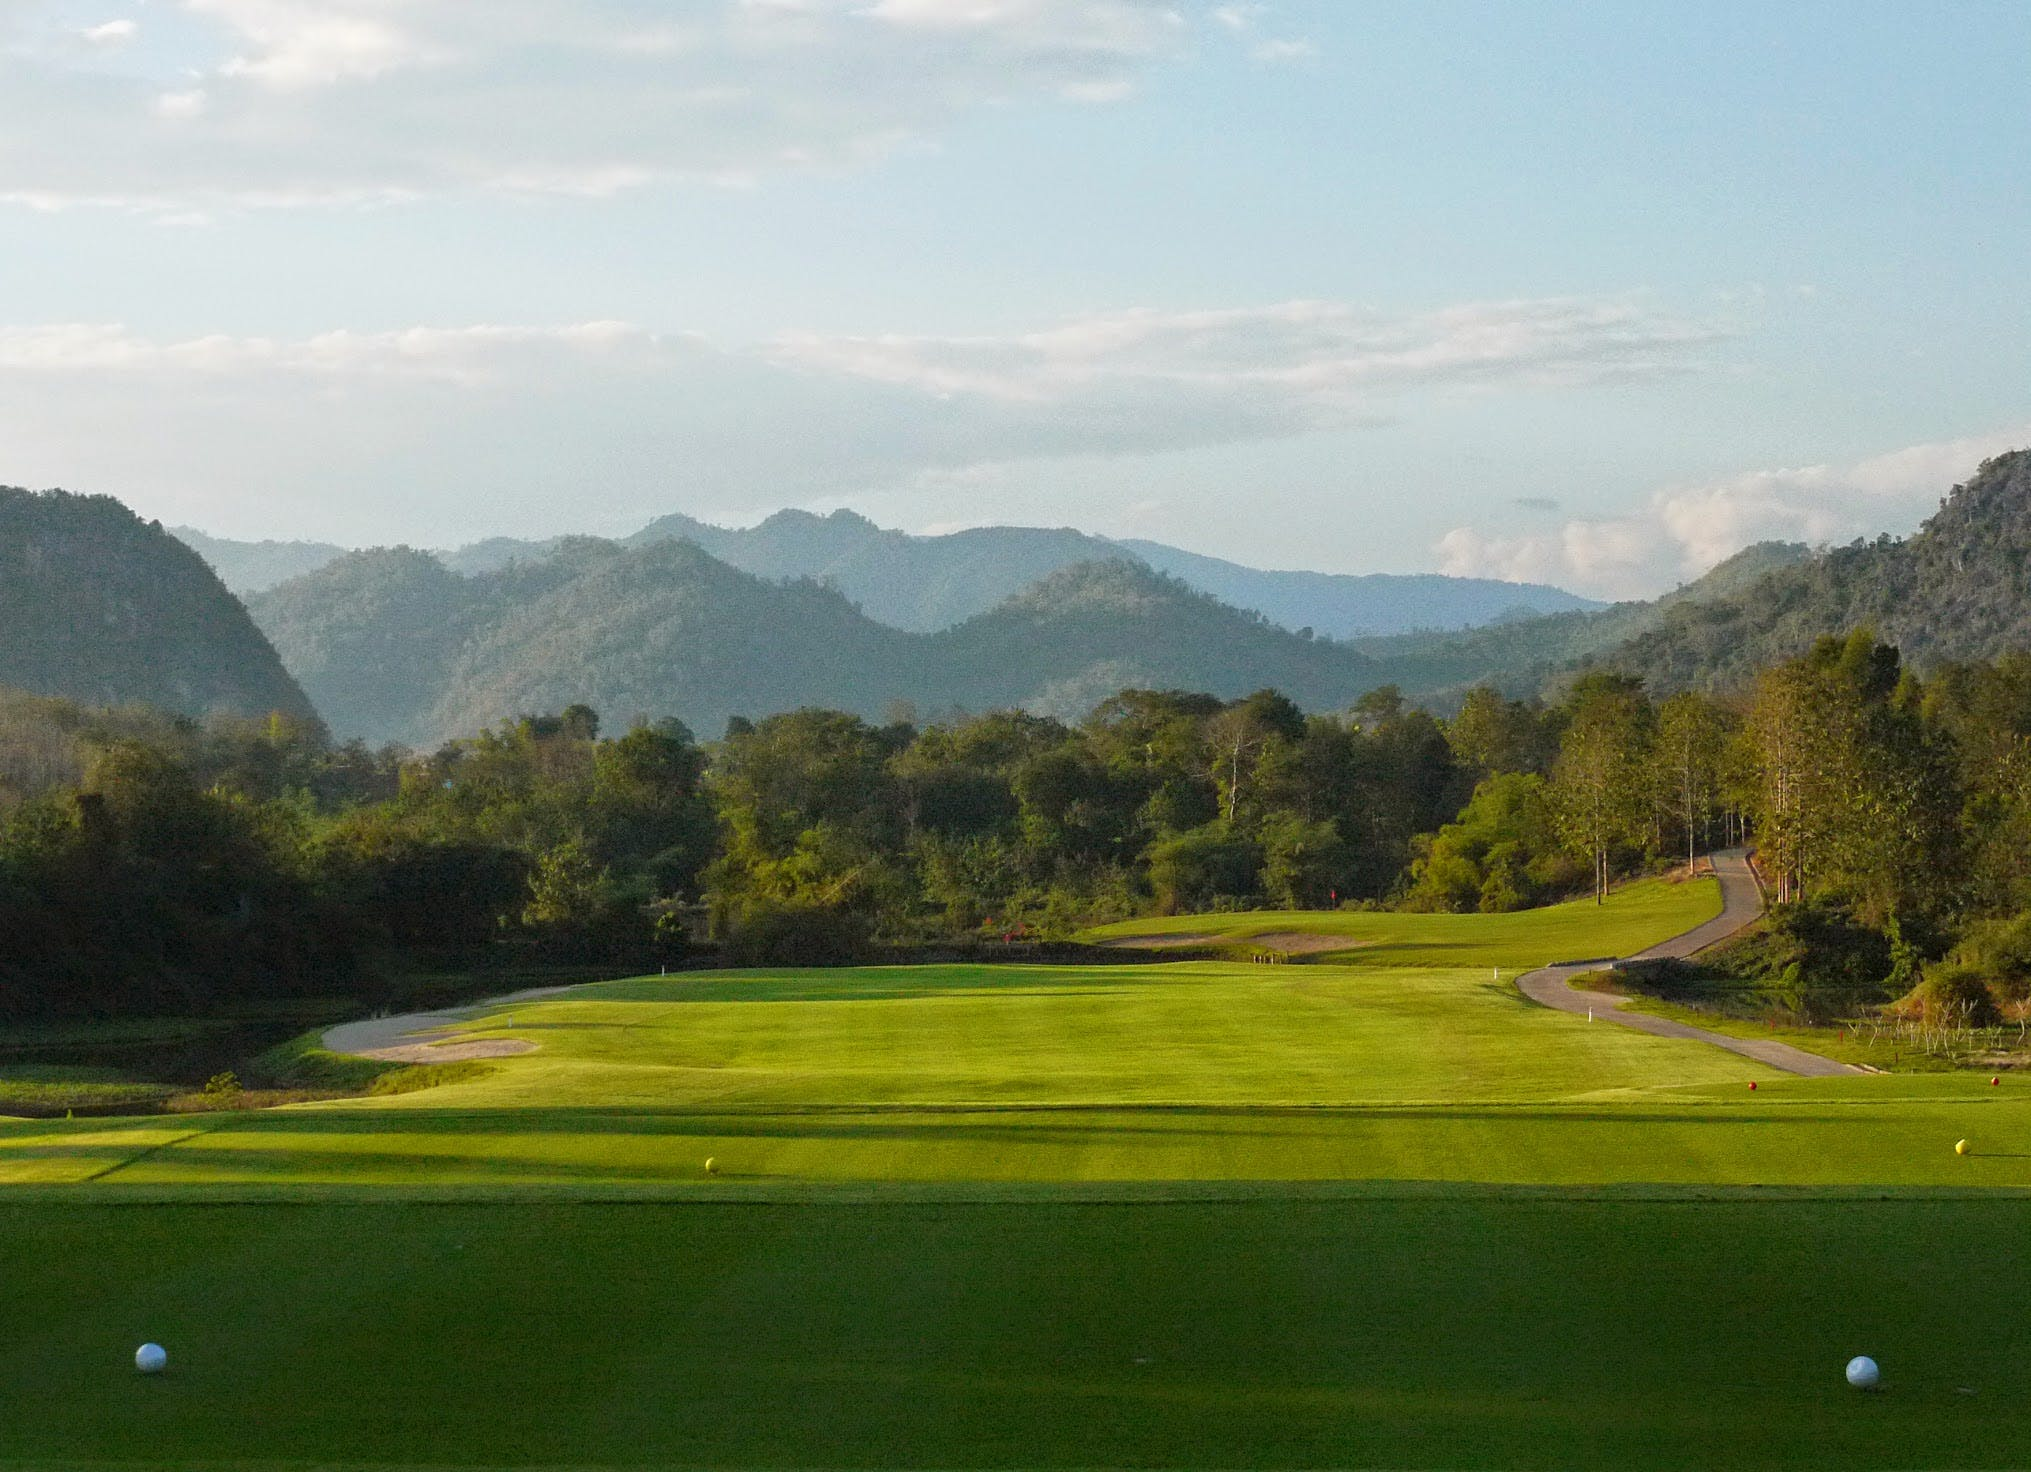 Luang Prabang golf course fairway hole